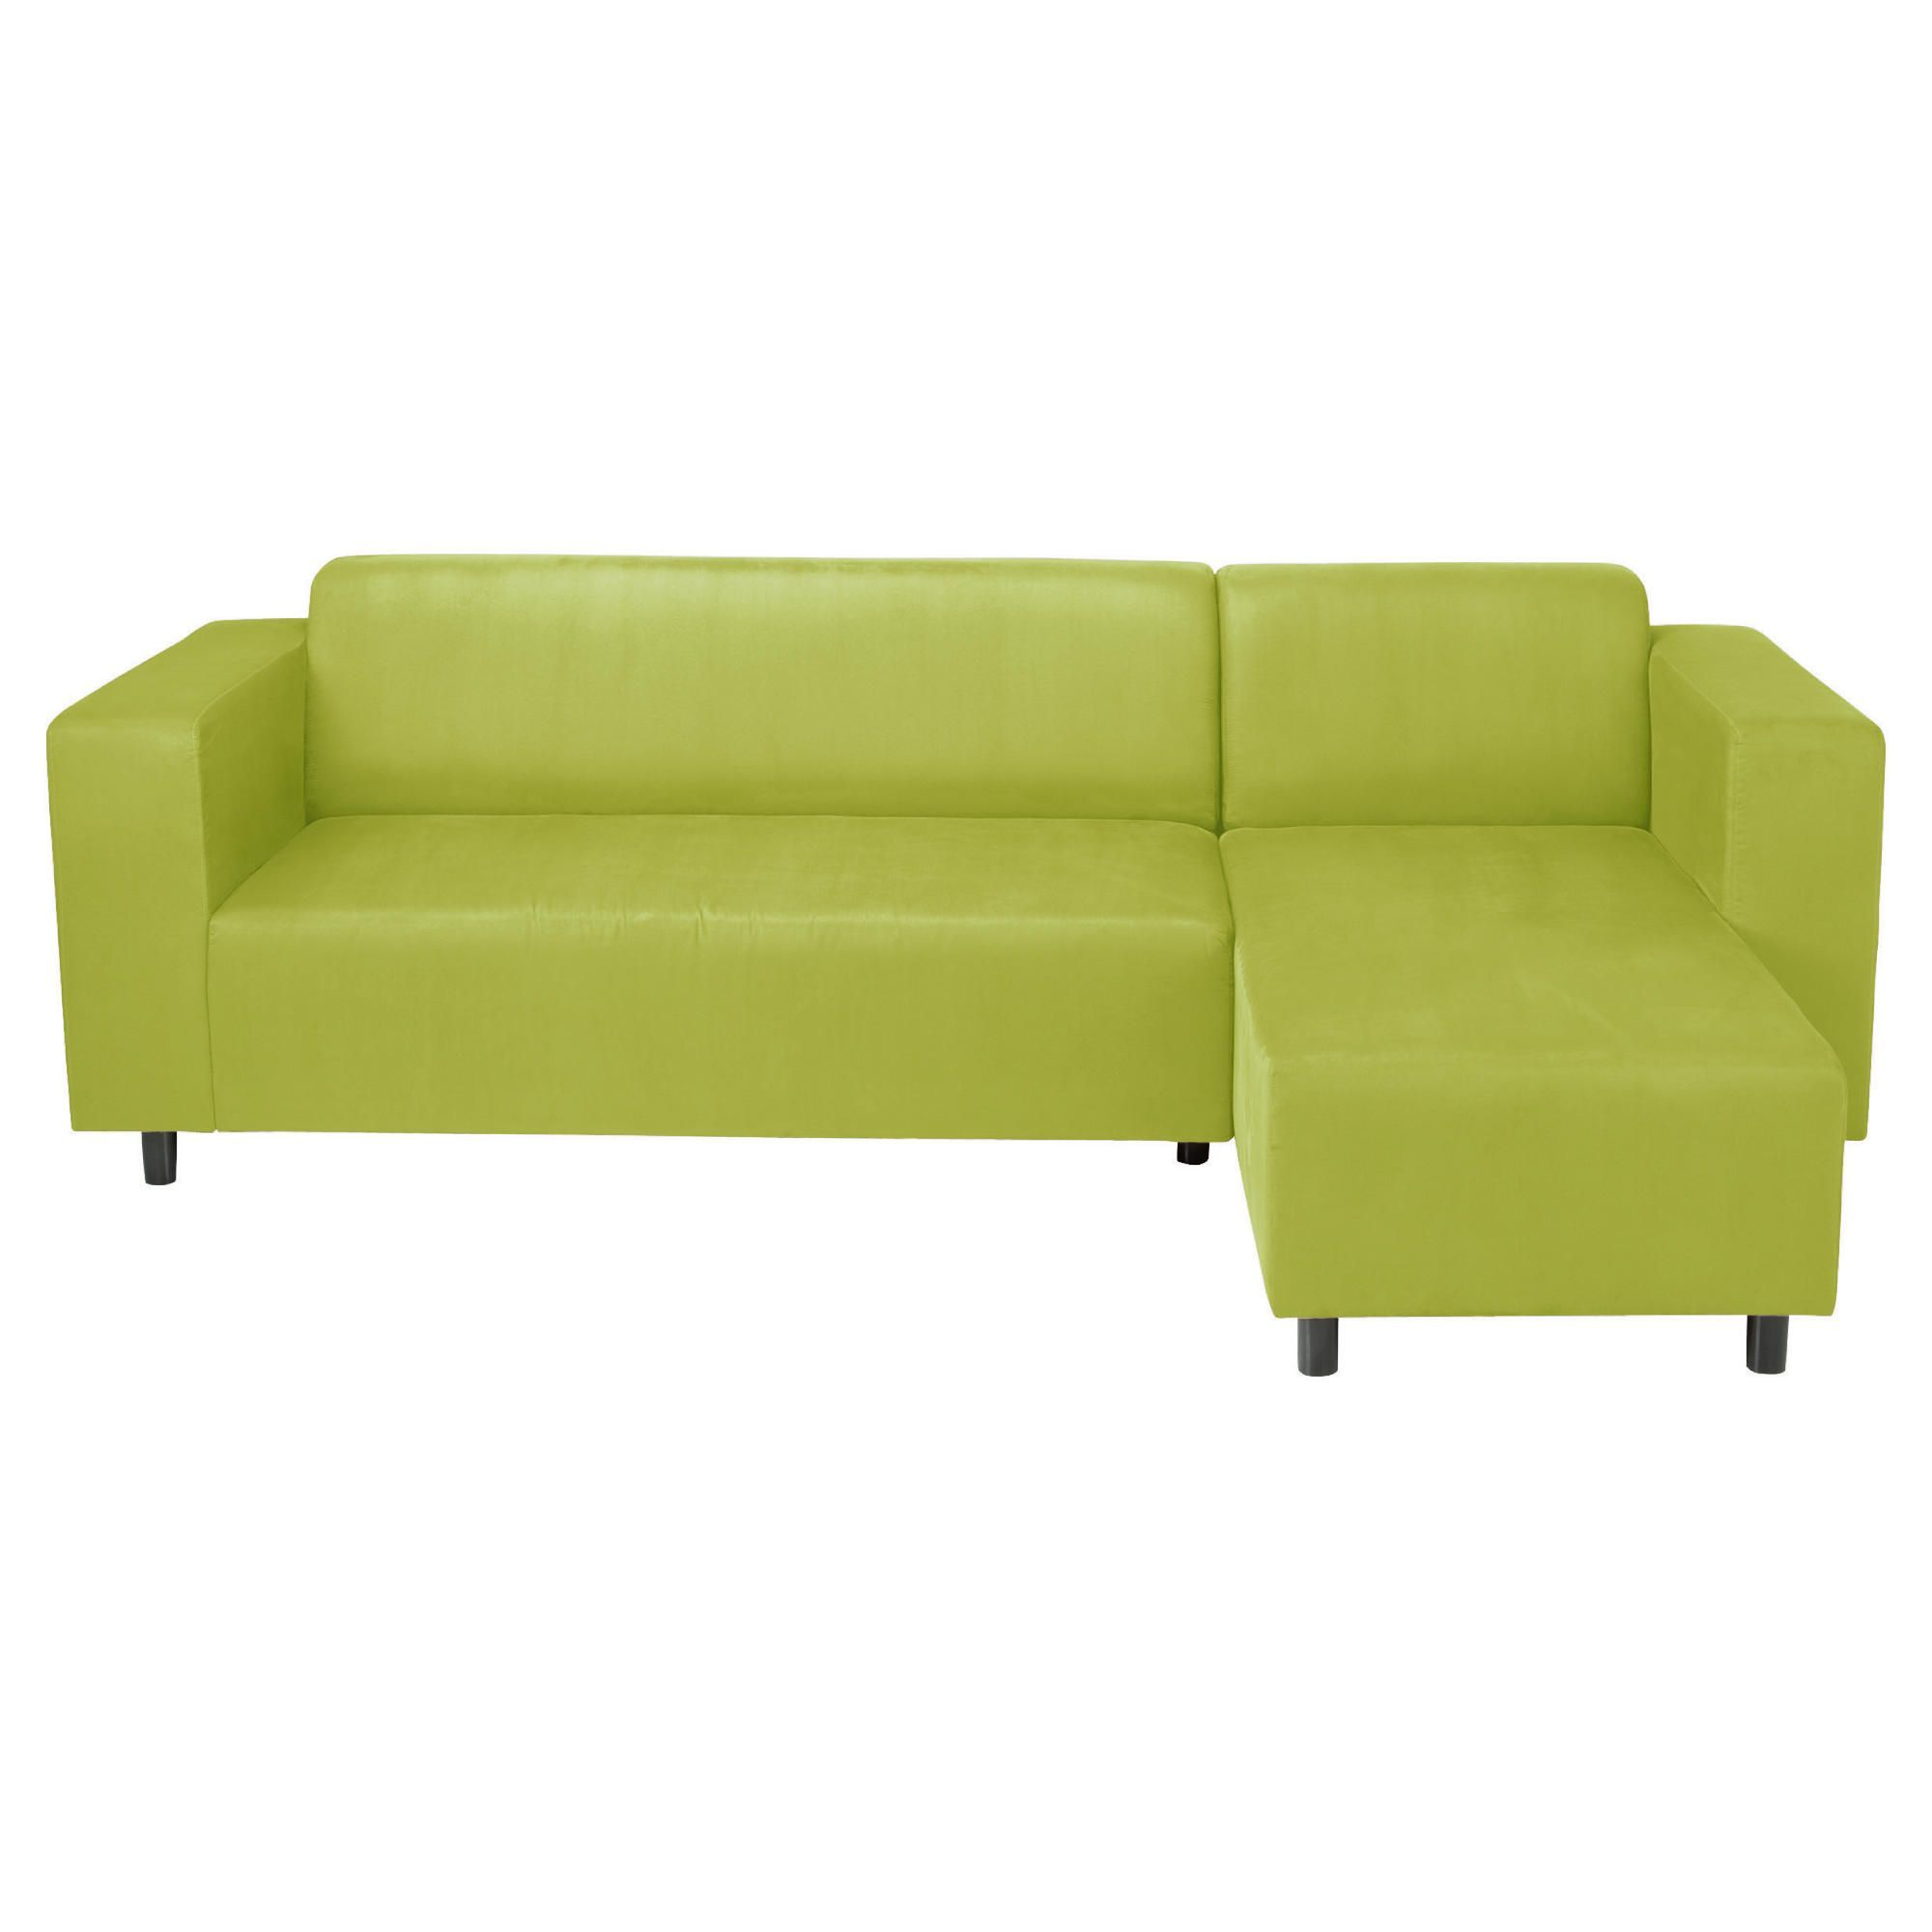 Awesome Chic Lime Green Gloss Leather Small Sectional Sofa For F Living Room Ideas With Queen Square Track Arms